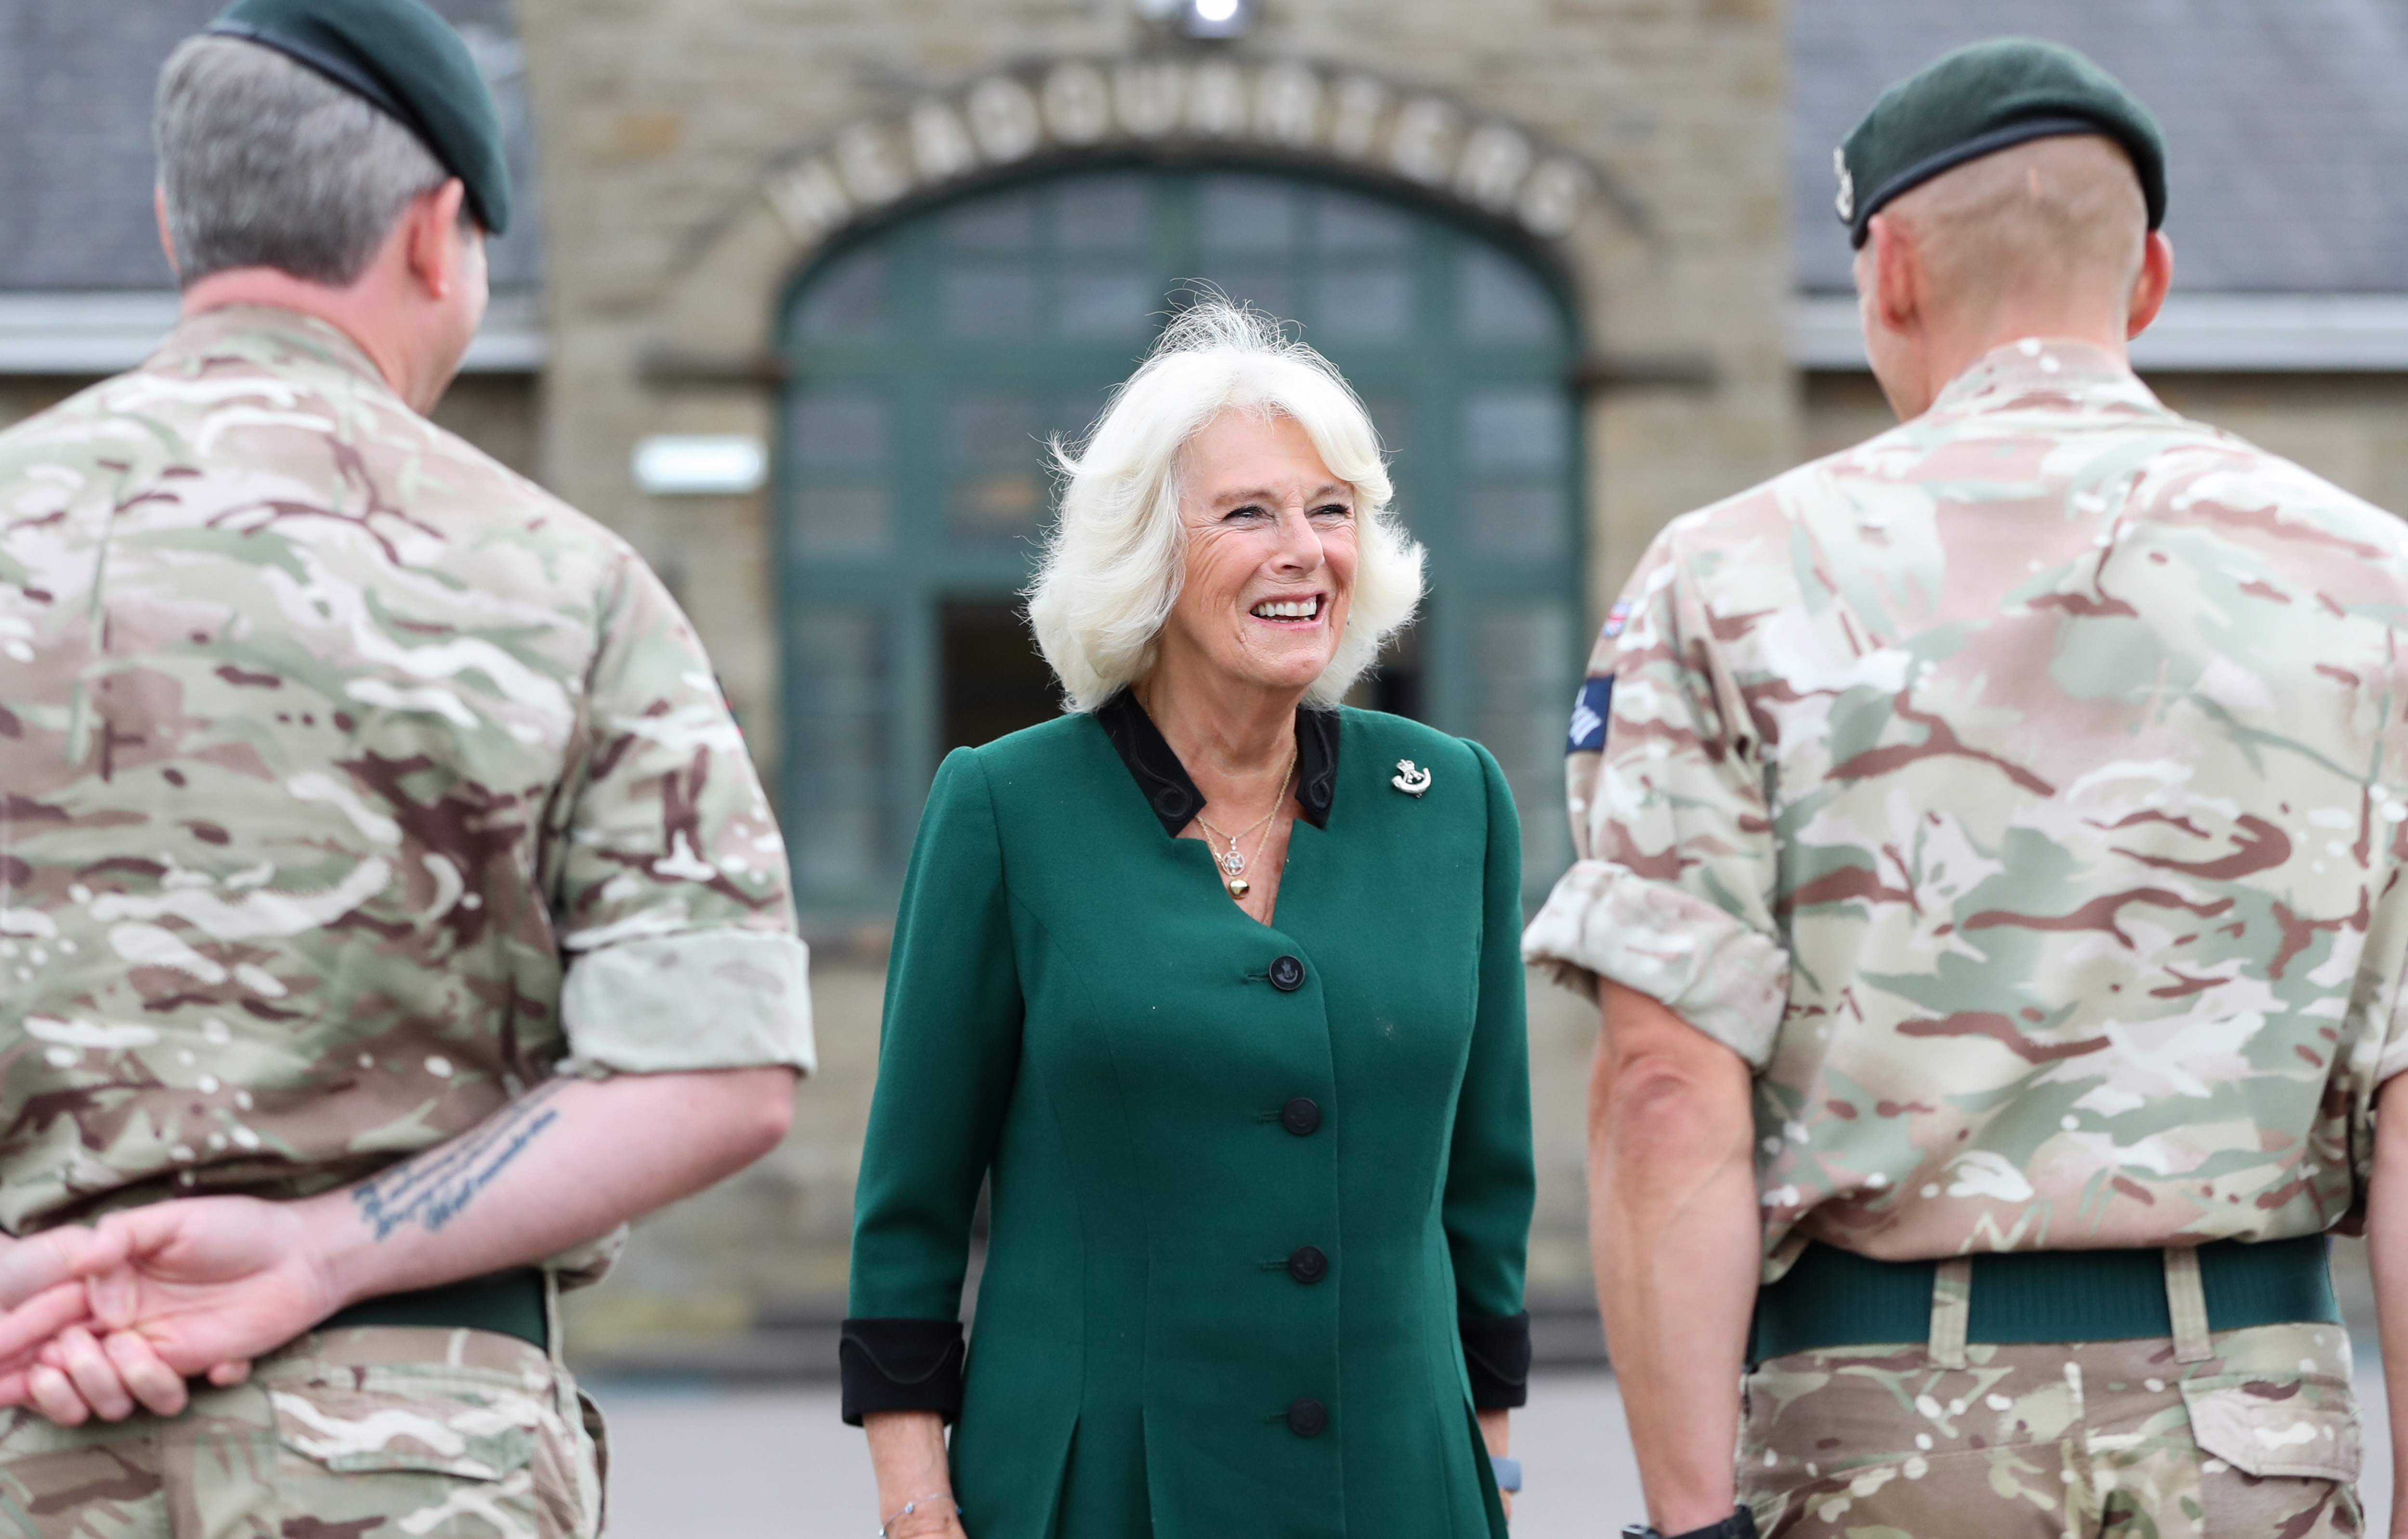 The Duchess of Cornwall speaking with Riflemen, who are currently undertaking further training, at Beachley Barracks, Chepstow